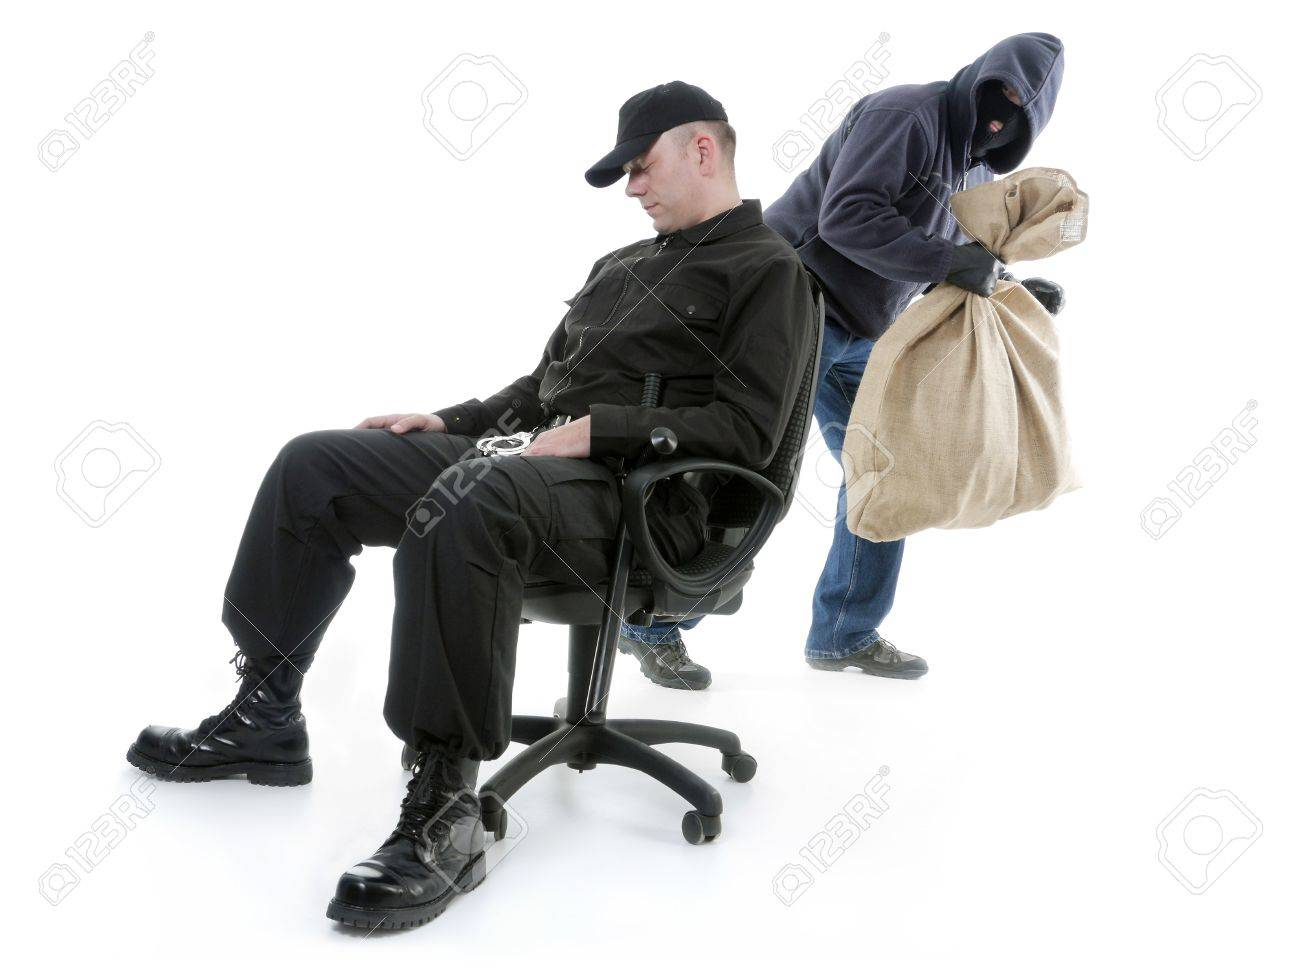 Security man sleeping on armchair being unaware of masked burglar stealing behind his back Stock Photo - 25987932